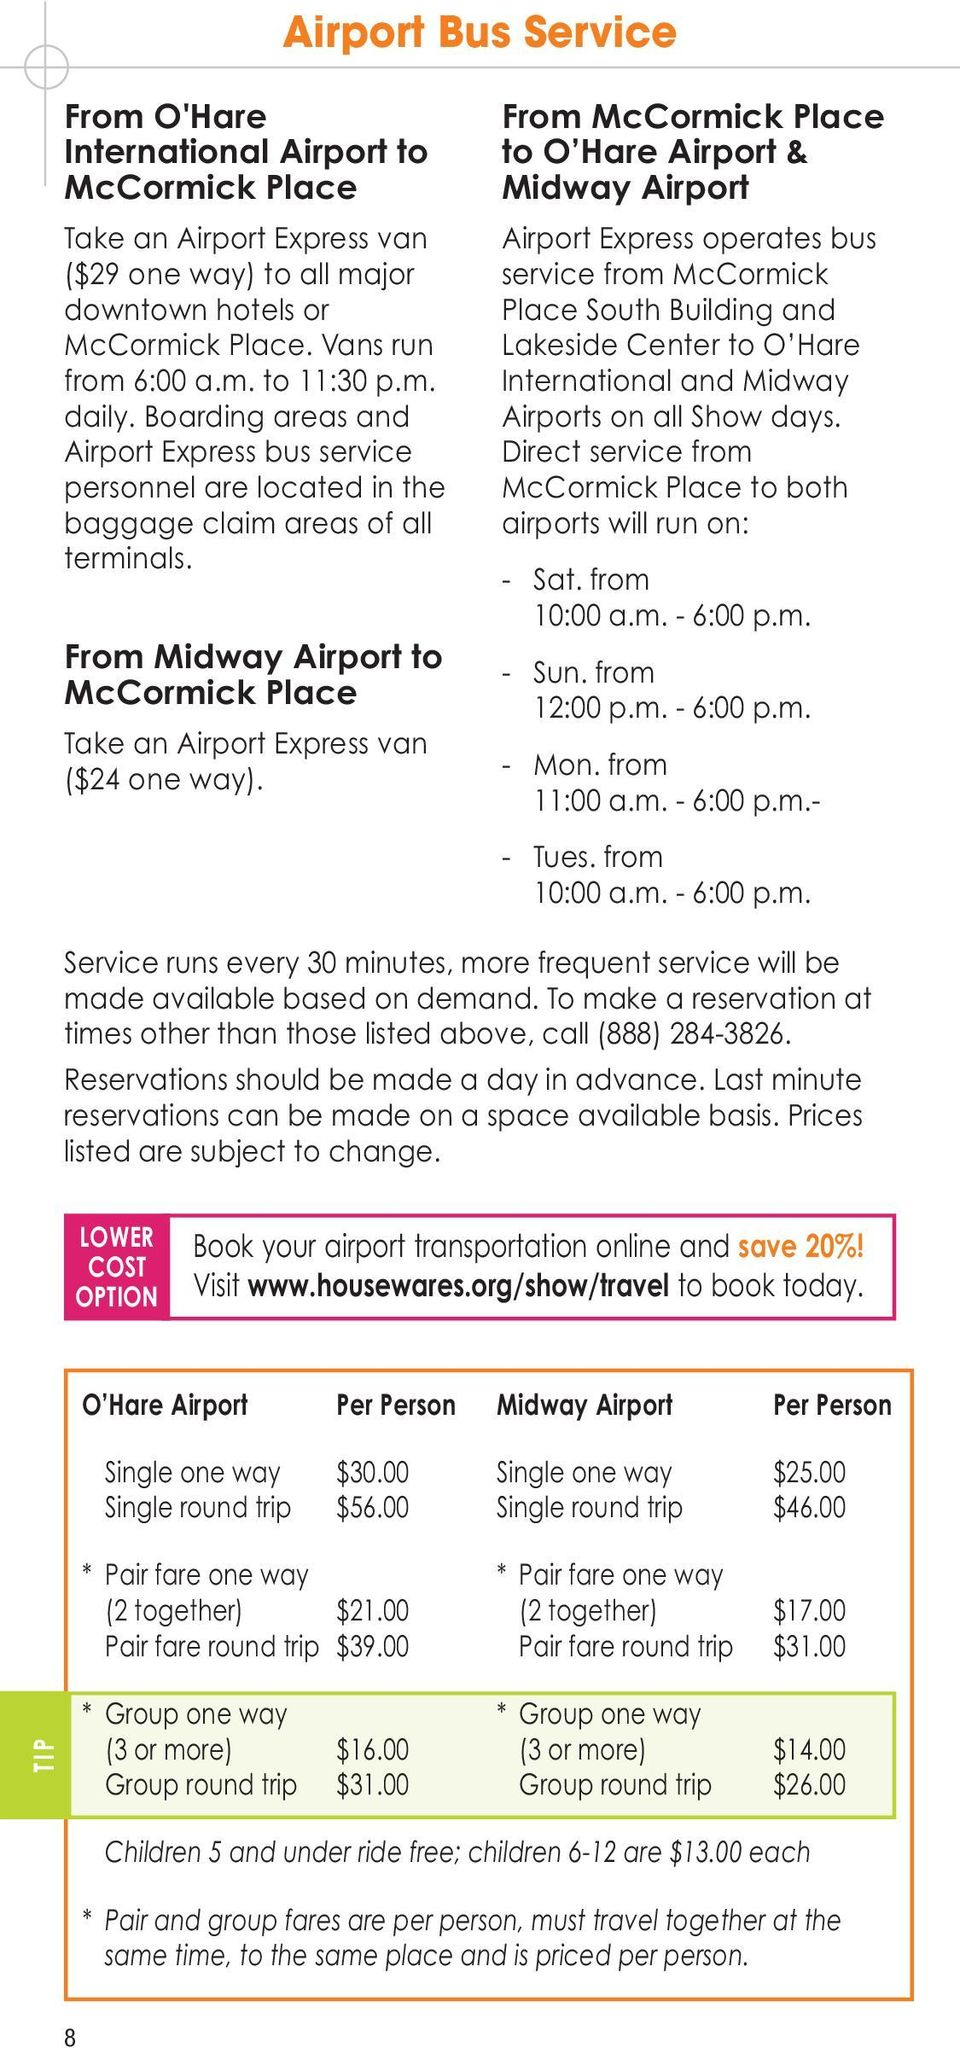 From Midway Airport to McCormick Place Take an Airport Express van ($24 one way).